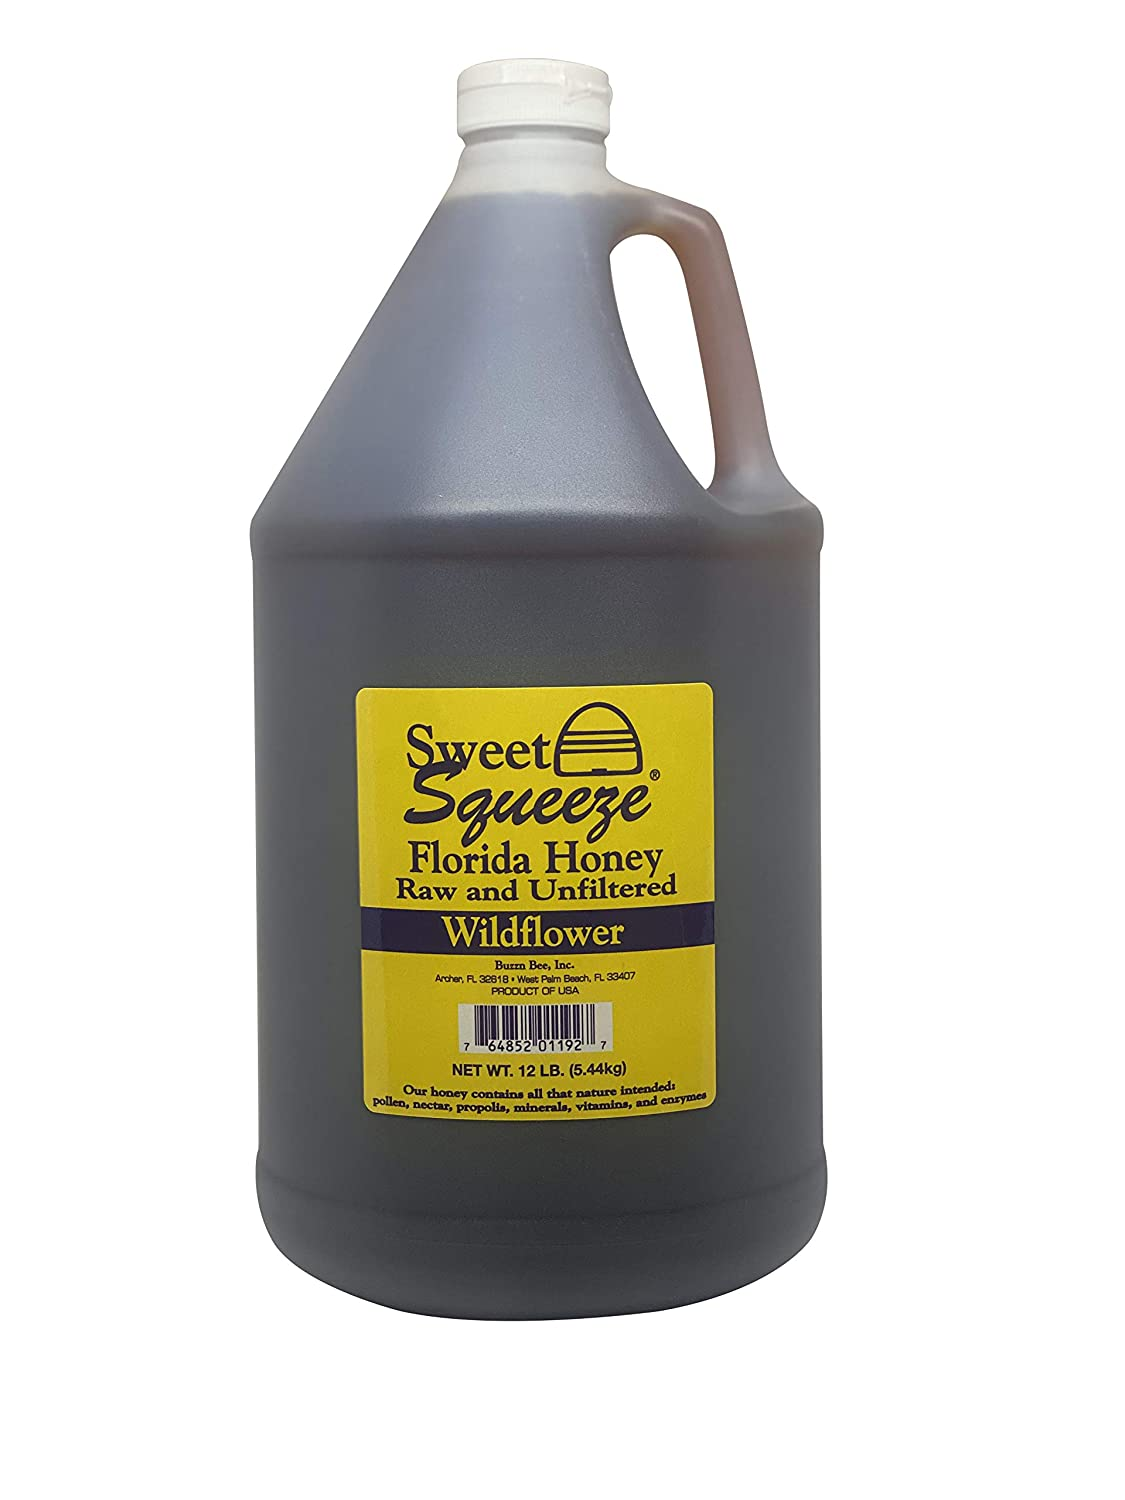 Sweet Squeeze Raw Honey - Unfiltered & Unpasteurized Wildflower Honey From Florida's Beekeepers - 12 Pound (Gallon)